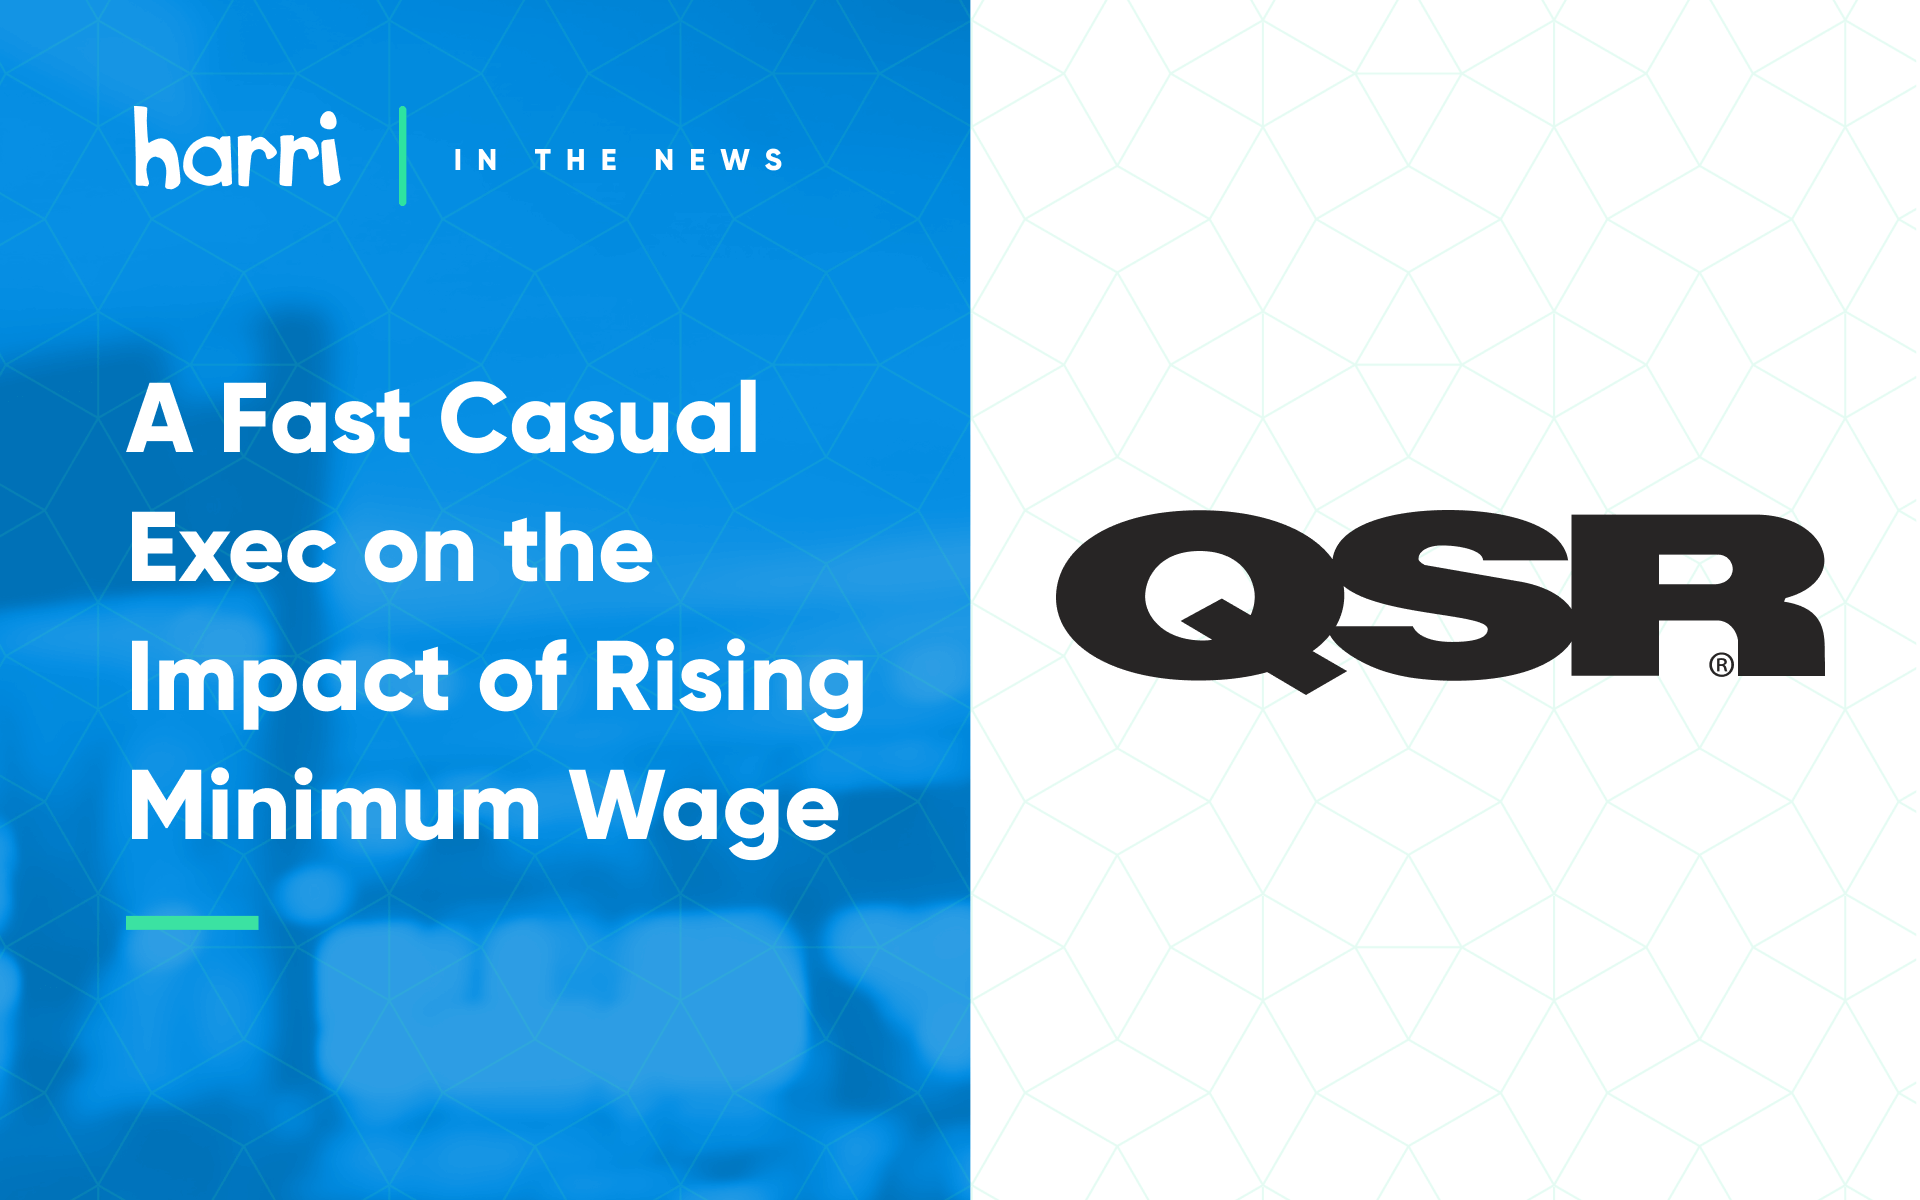 Rising Minimum Wage in Hospiality